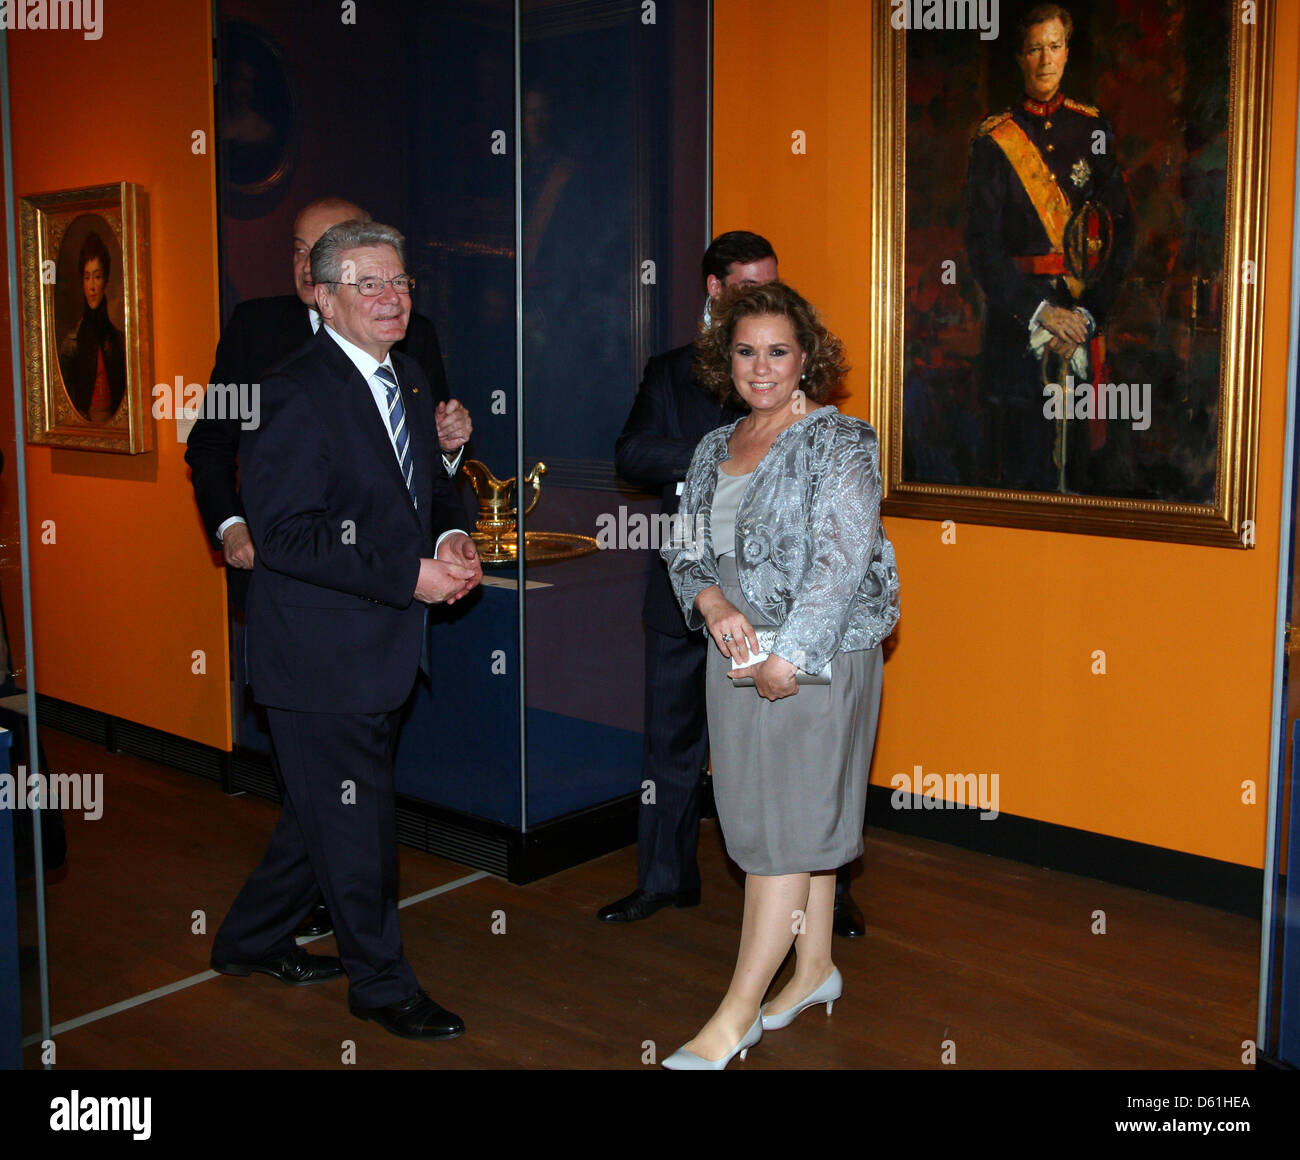 German President Joachim Gauck and Grand Duchess of Luxembourg Maria Teresa are pictured at an exhibition at the - Stock Image